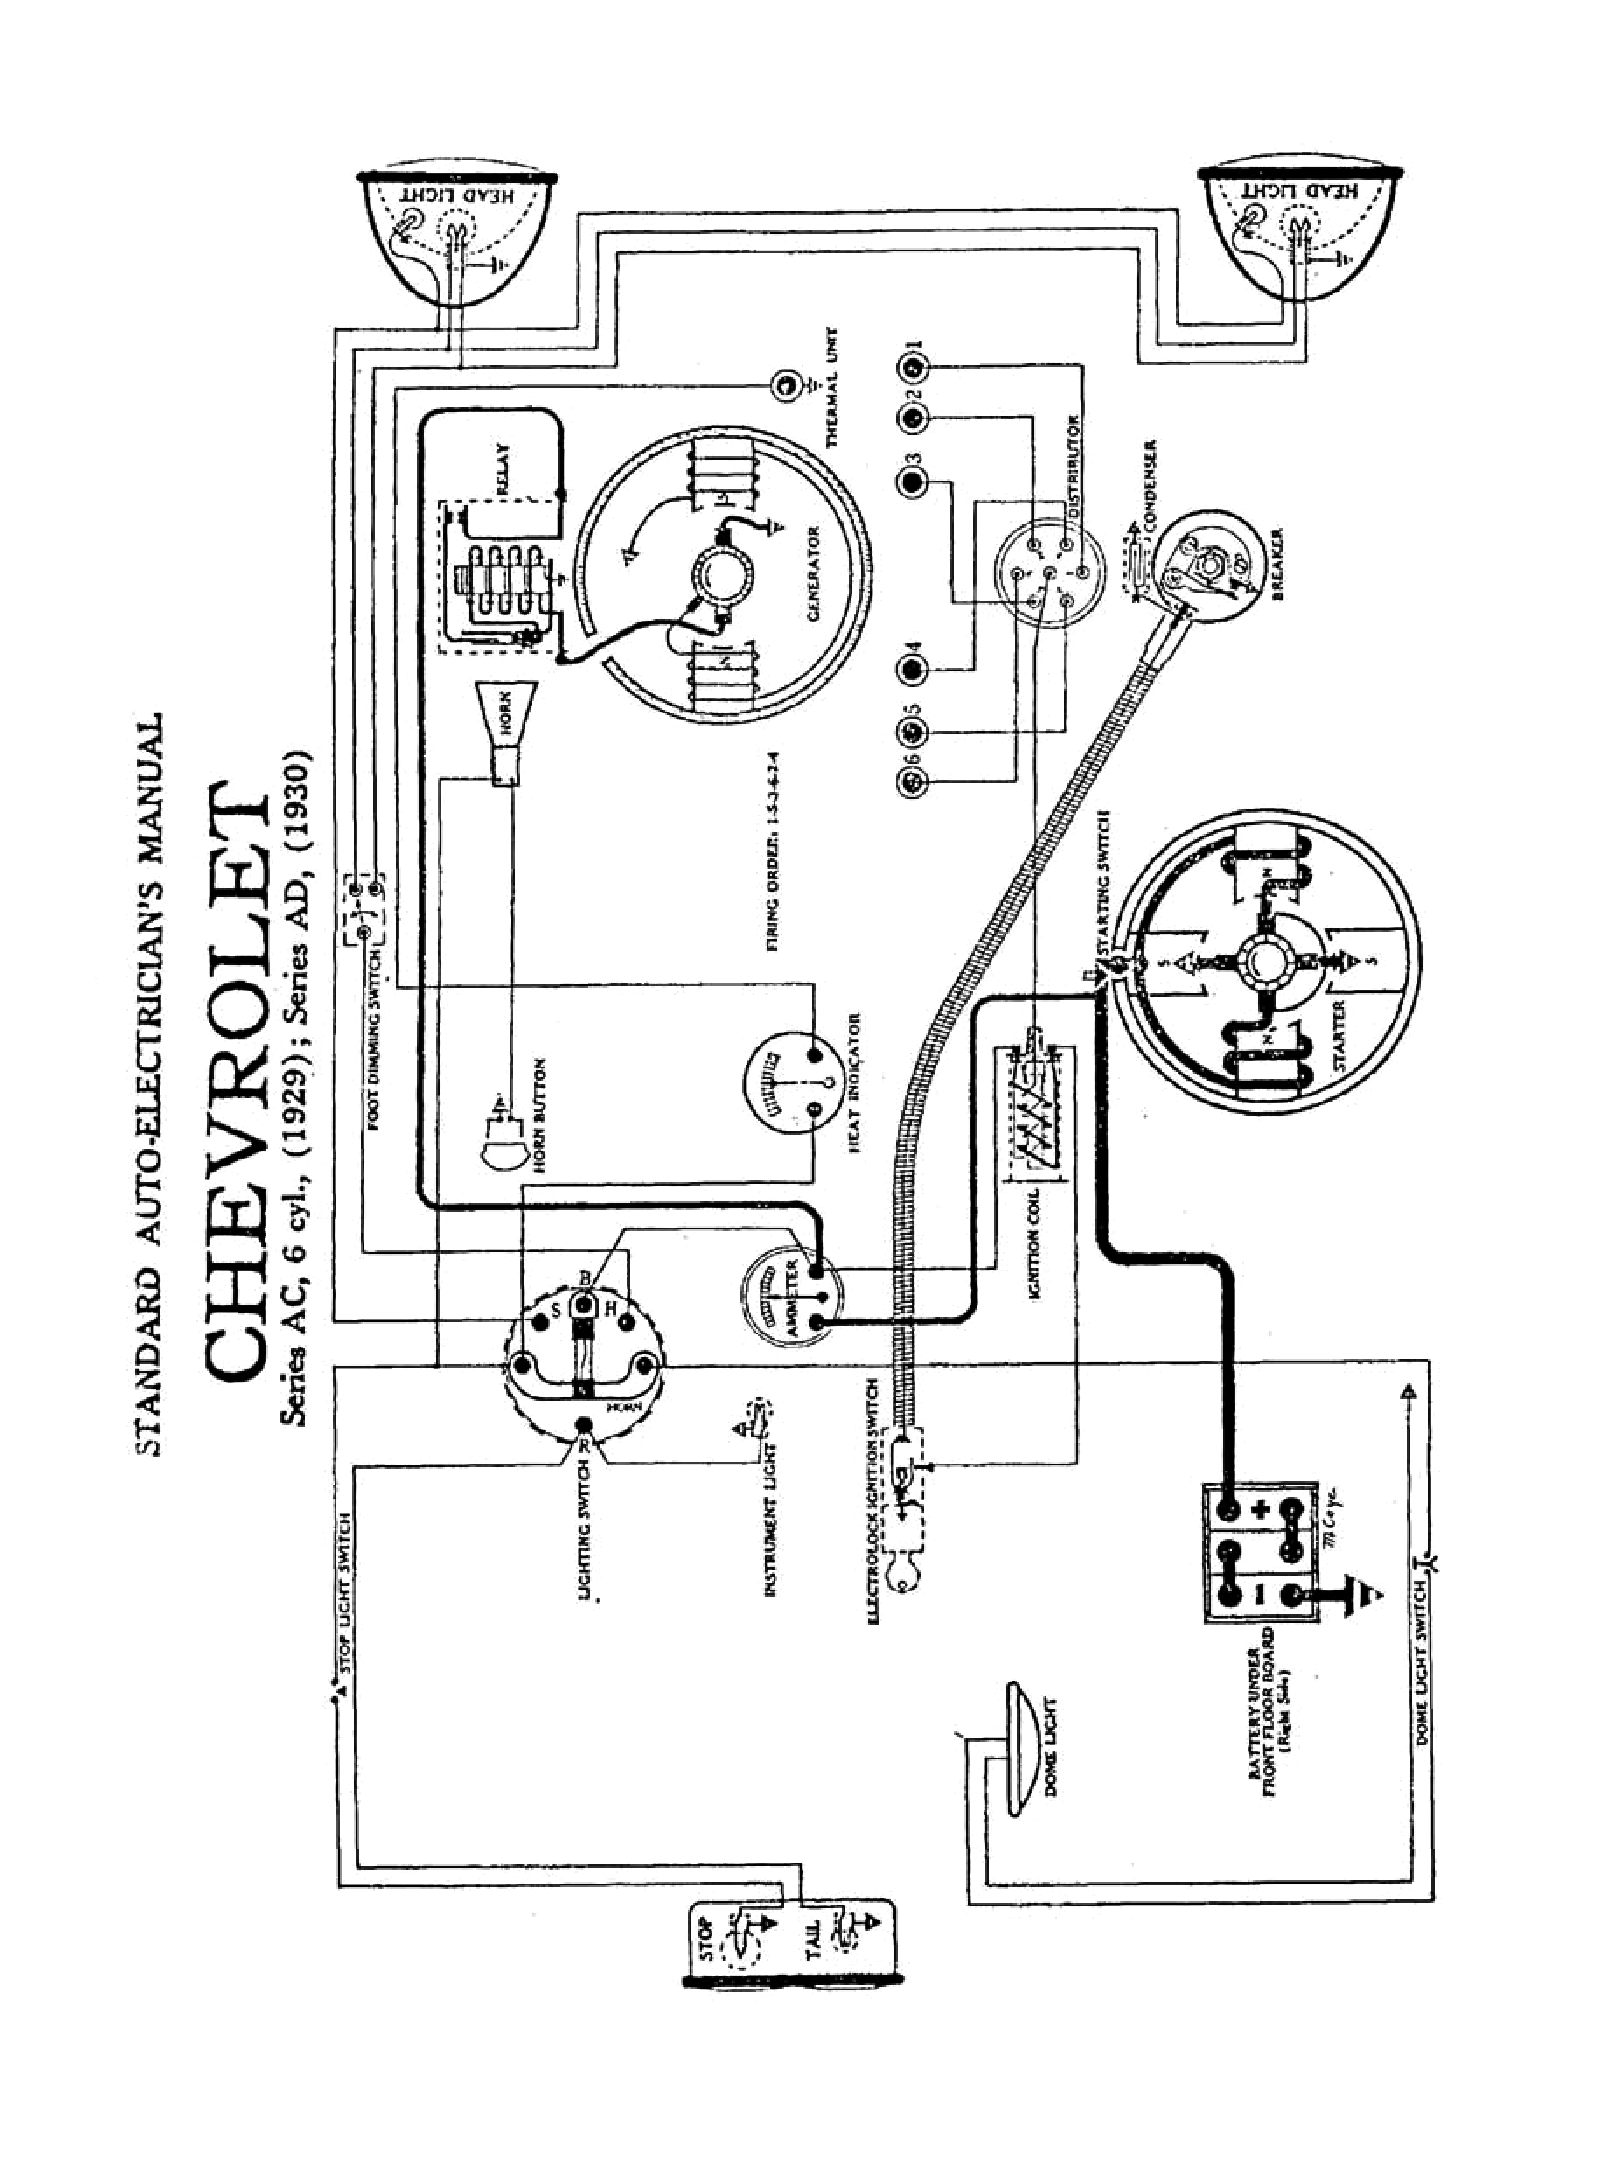 Capacity Yard Truck Wiring Diagram